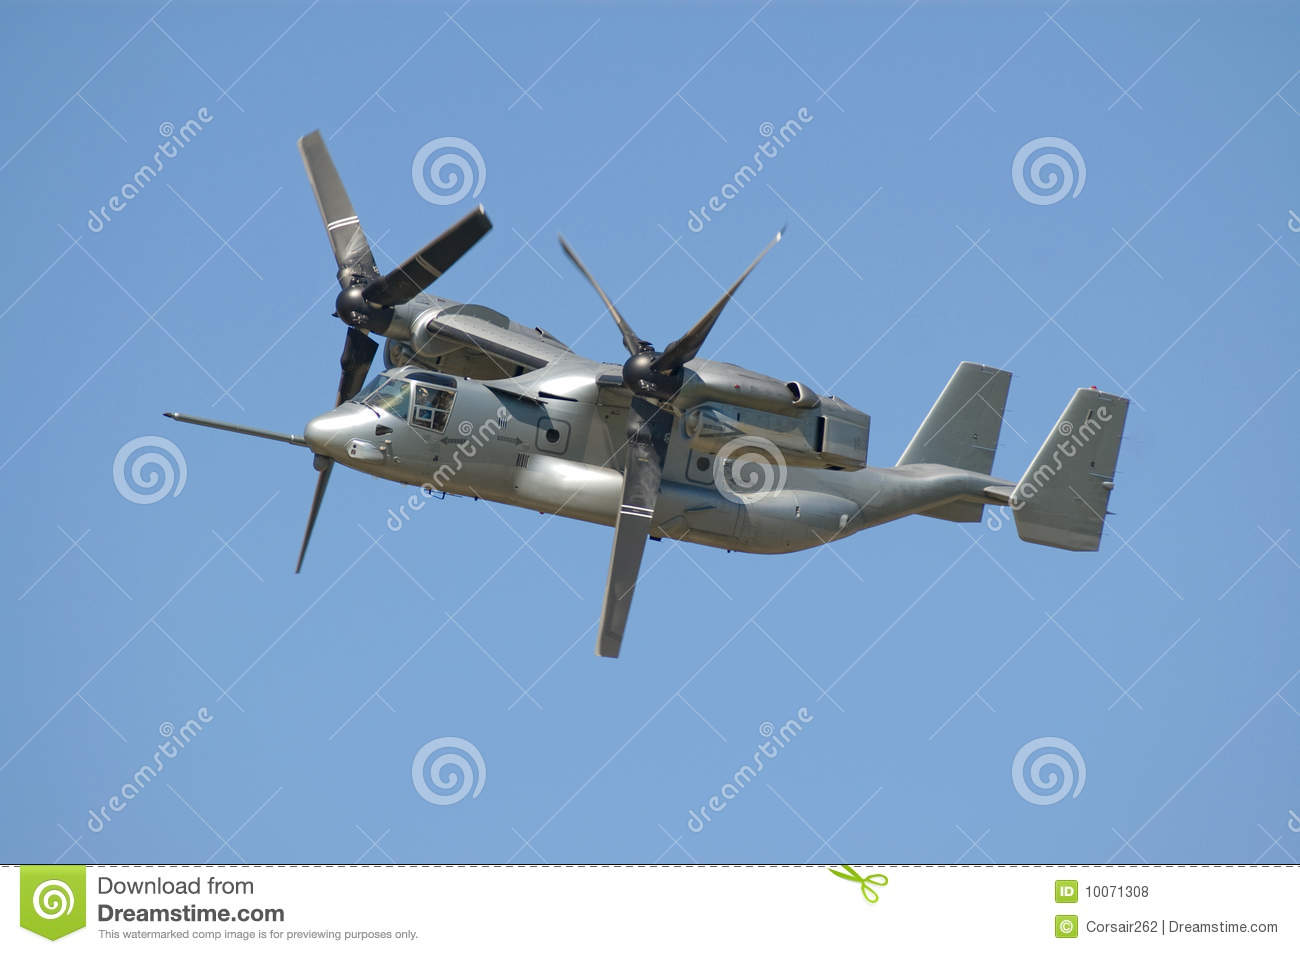 soviet hind helicopter with Royalty Free Stock Photos V 22 Osprey Helicopter Image10071308 on Index together with Mil Mi 24 D Hind Fuerza Aerea Sandinista Managua Nicaragua 1986 moreover At2swatter additionally Showthread additionally English Frame4 Hind.